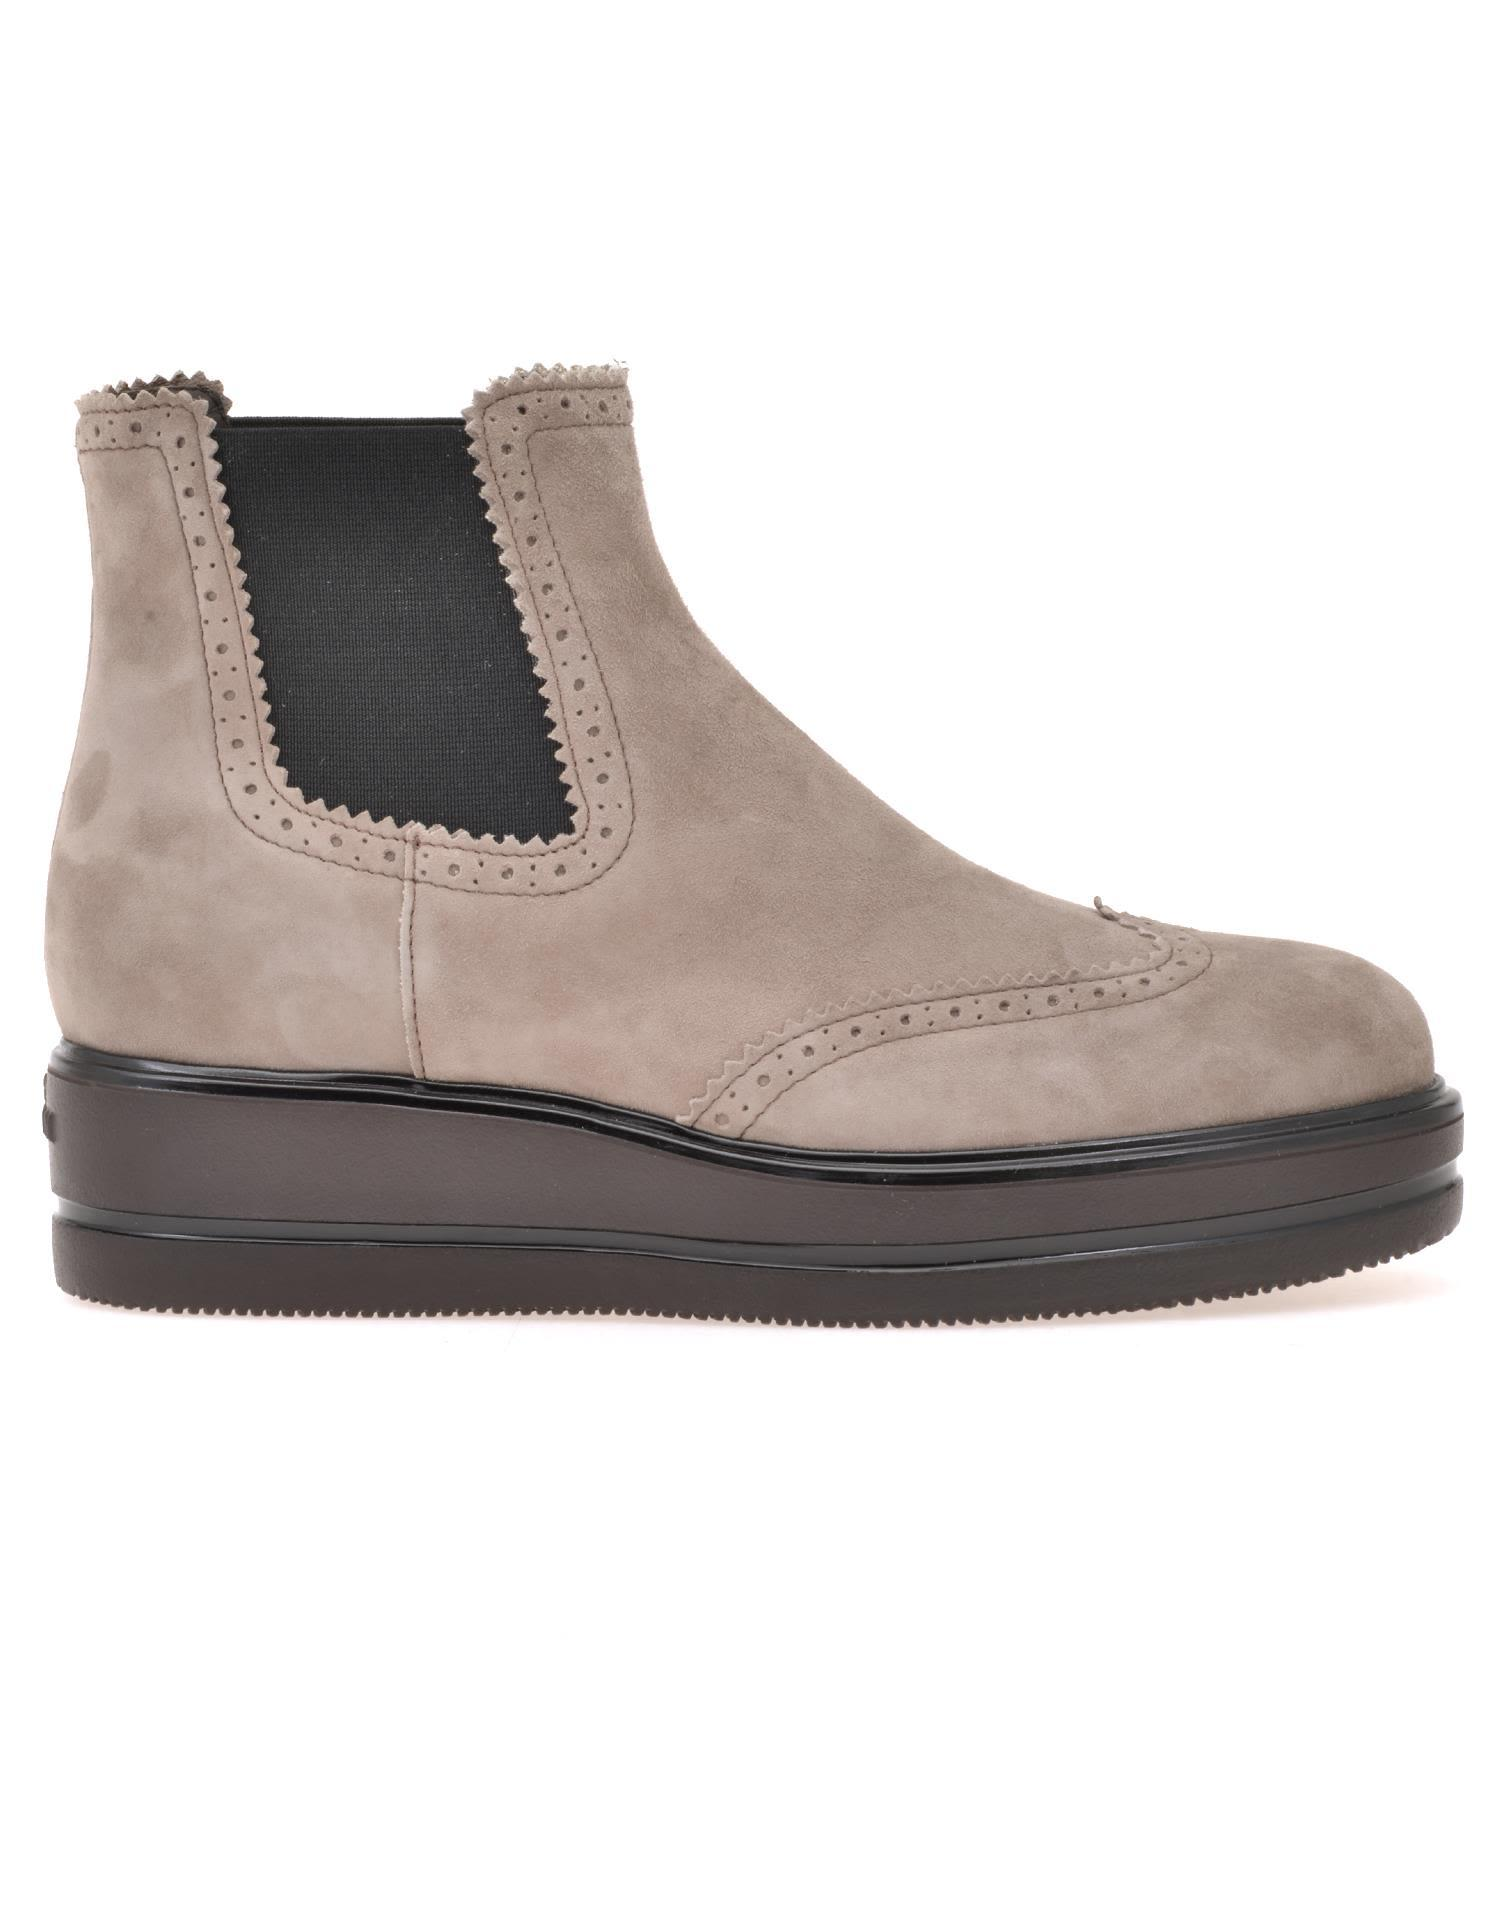 Hogan H323 Chelsea Boots In Palude